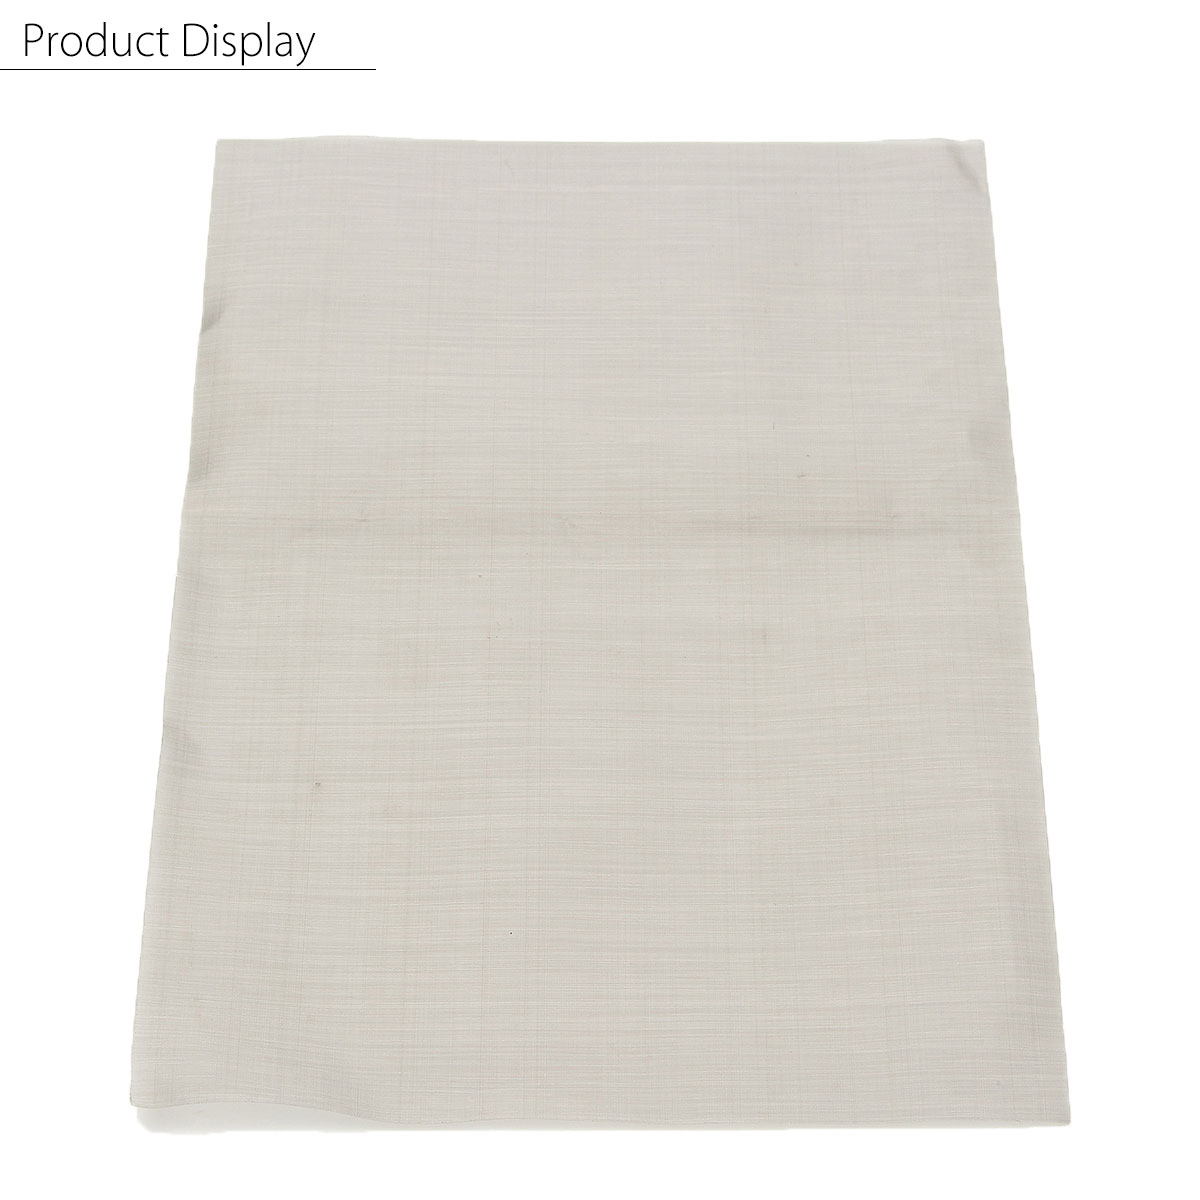 400 Mesh Stainless Steel Screen Filter Woven Wire Filter Cloth for Water Oil Filtration 30x20cm